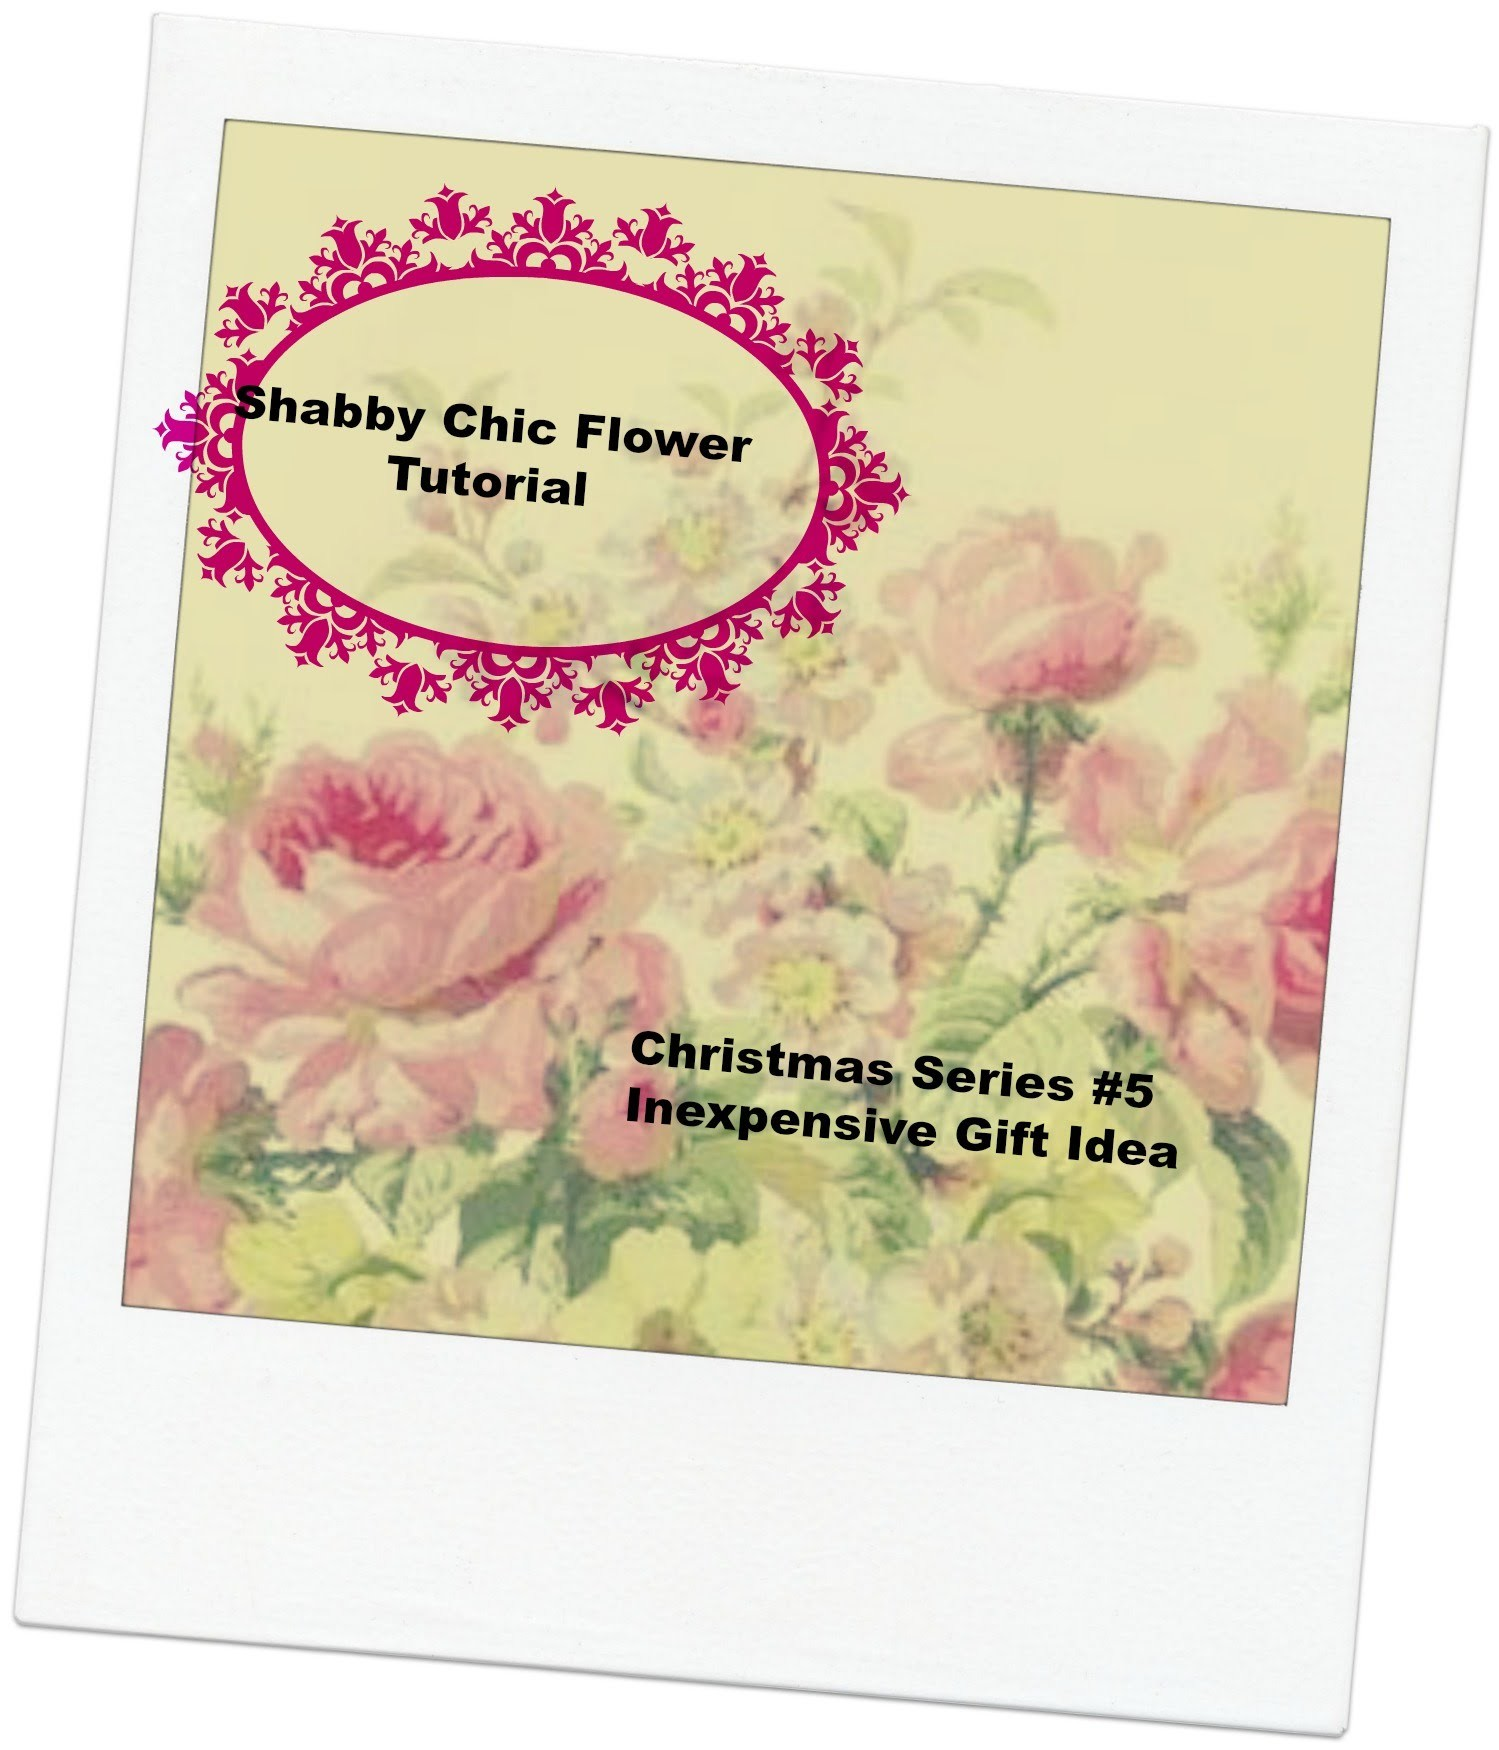 Shabby Chic Flower Tutorial #5